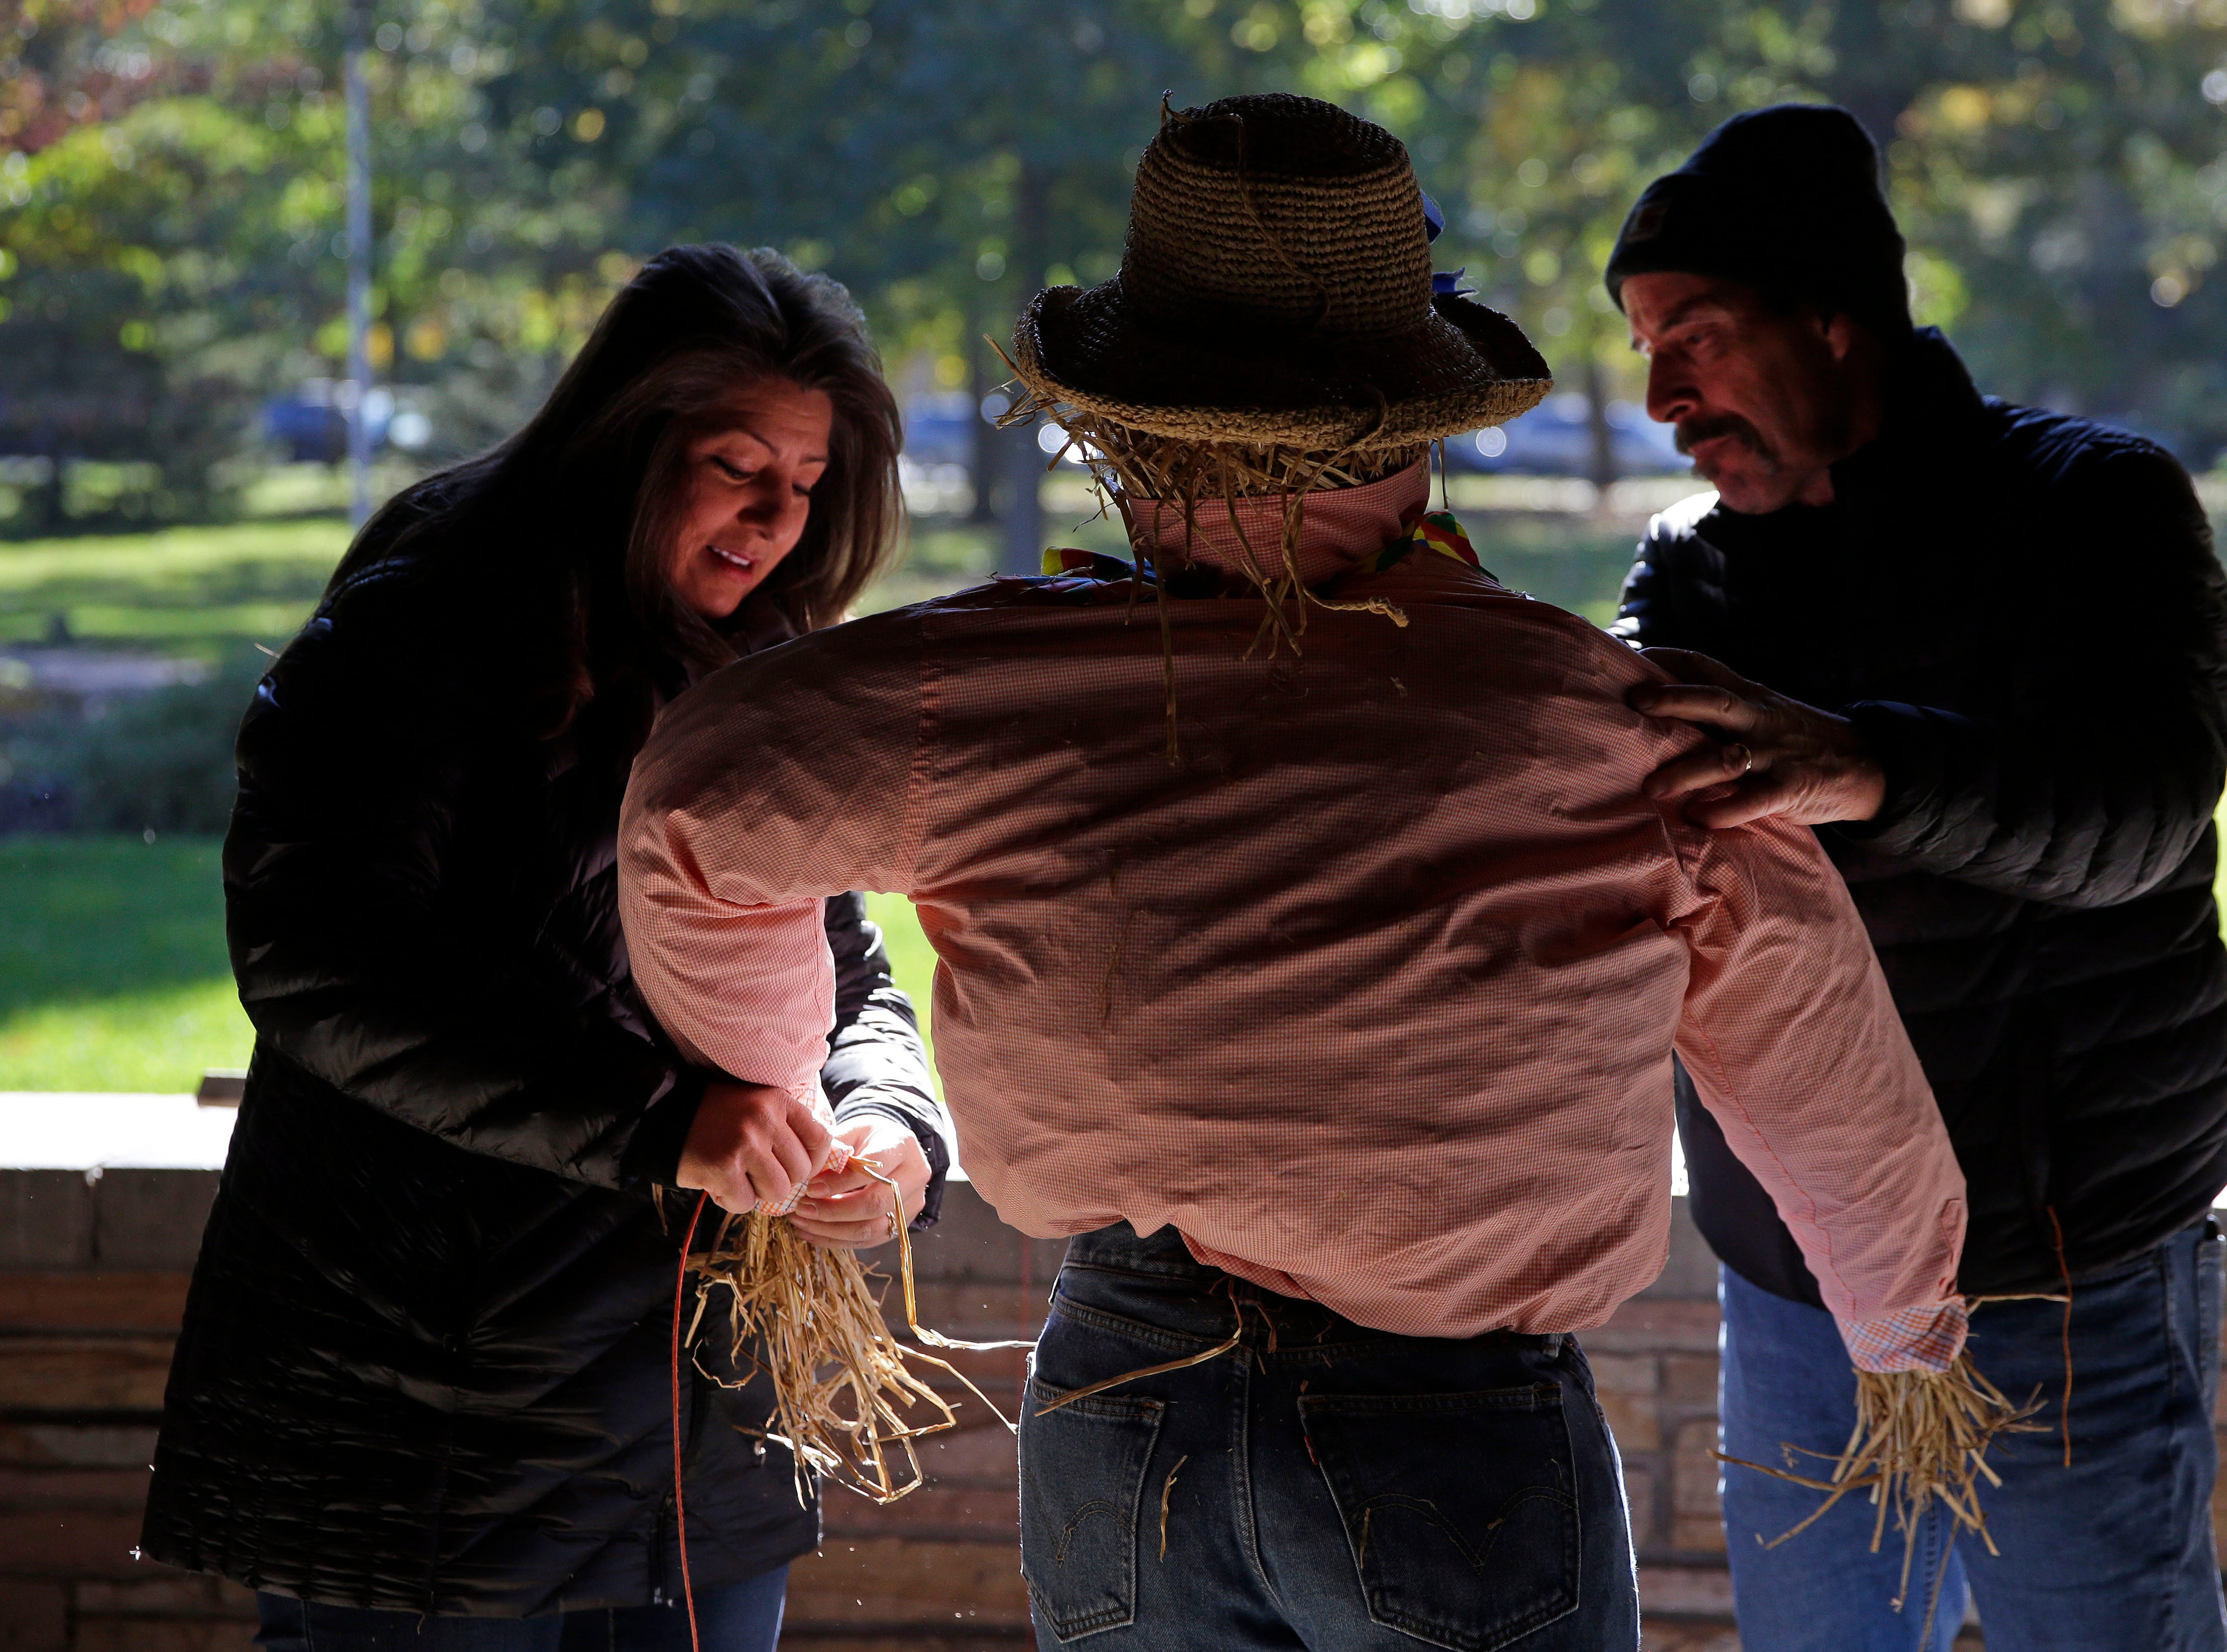 Consuelo Rodriguez and Dale Ables work on a scarecrow as the Neenah Parks and Recreation provided the frame and the straw for the annual Build-A-Scarecrow event Saturday, October 13, 2018, at Riverside Park in Neenah, Wis.